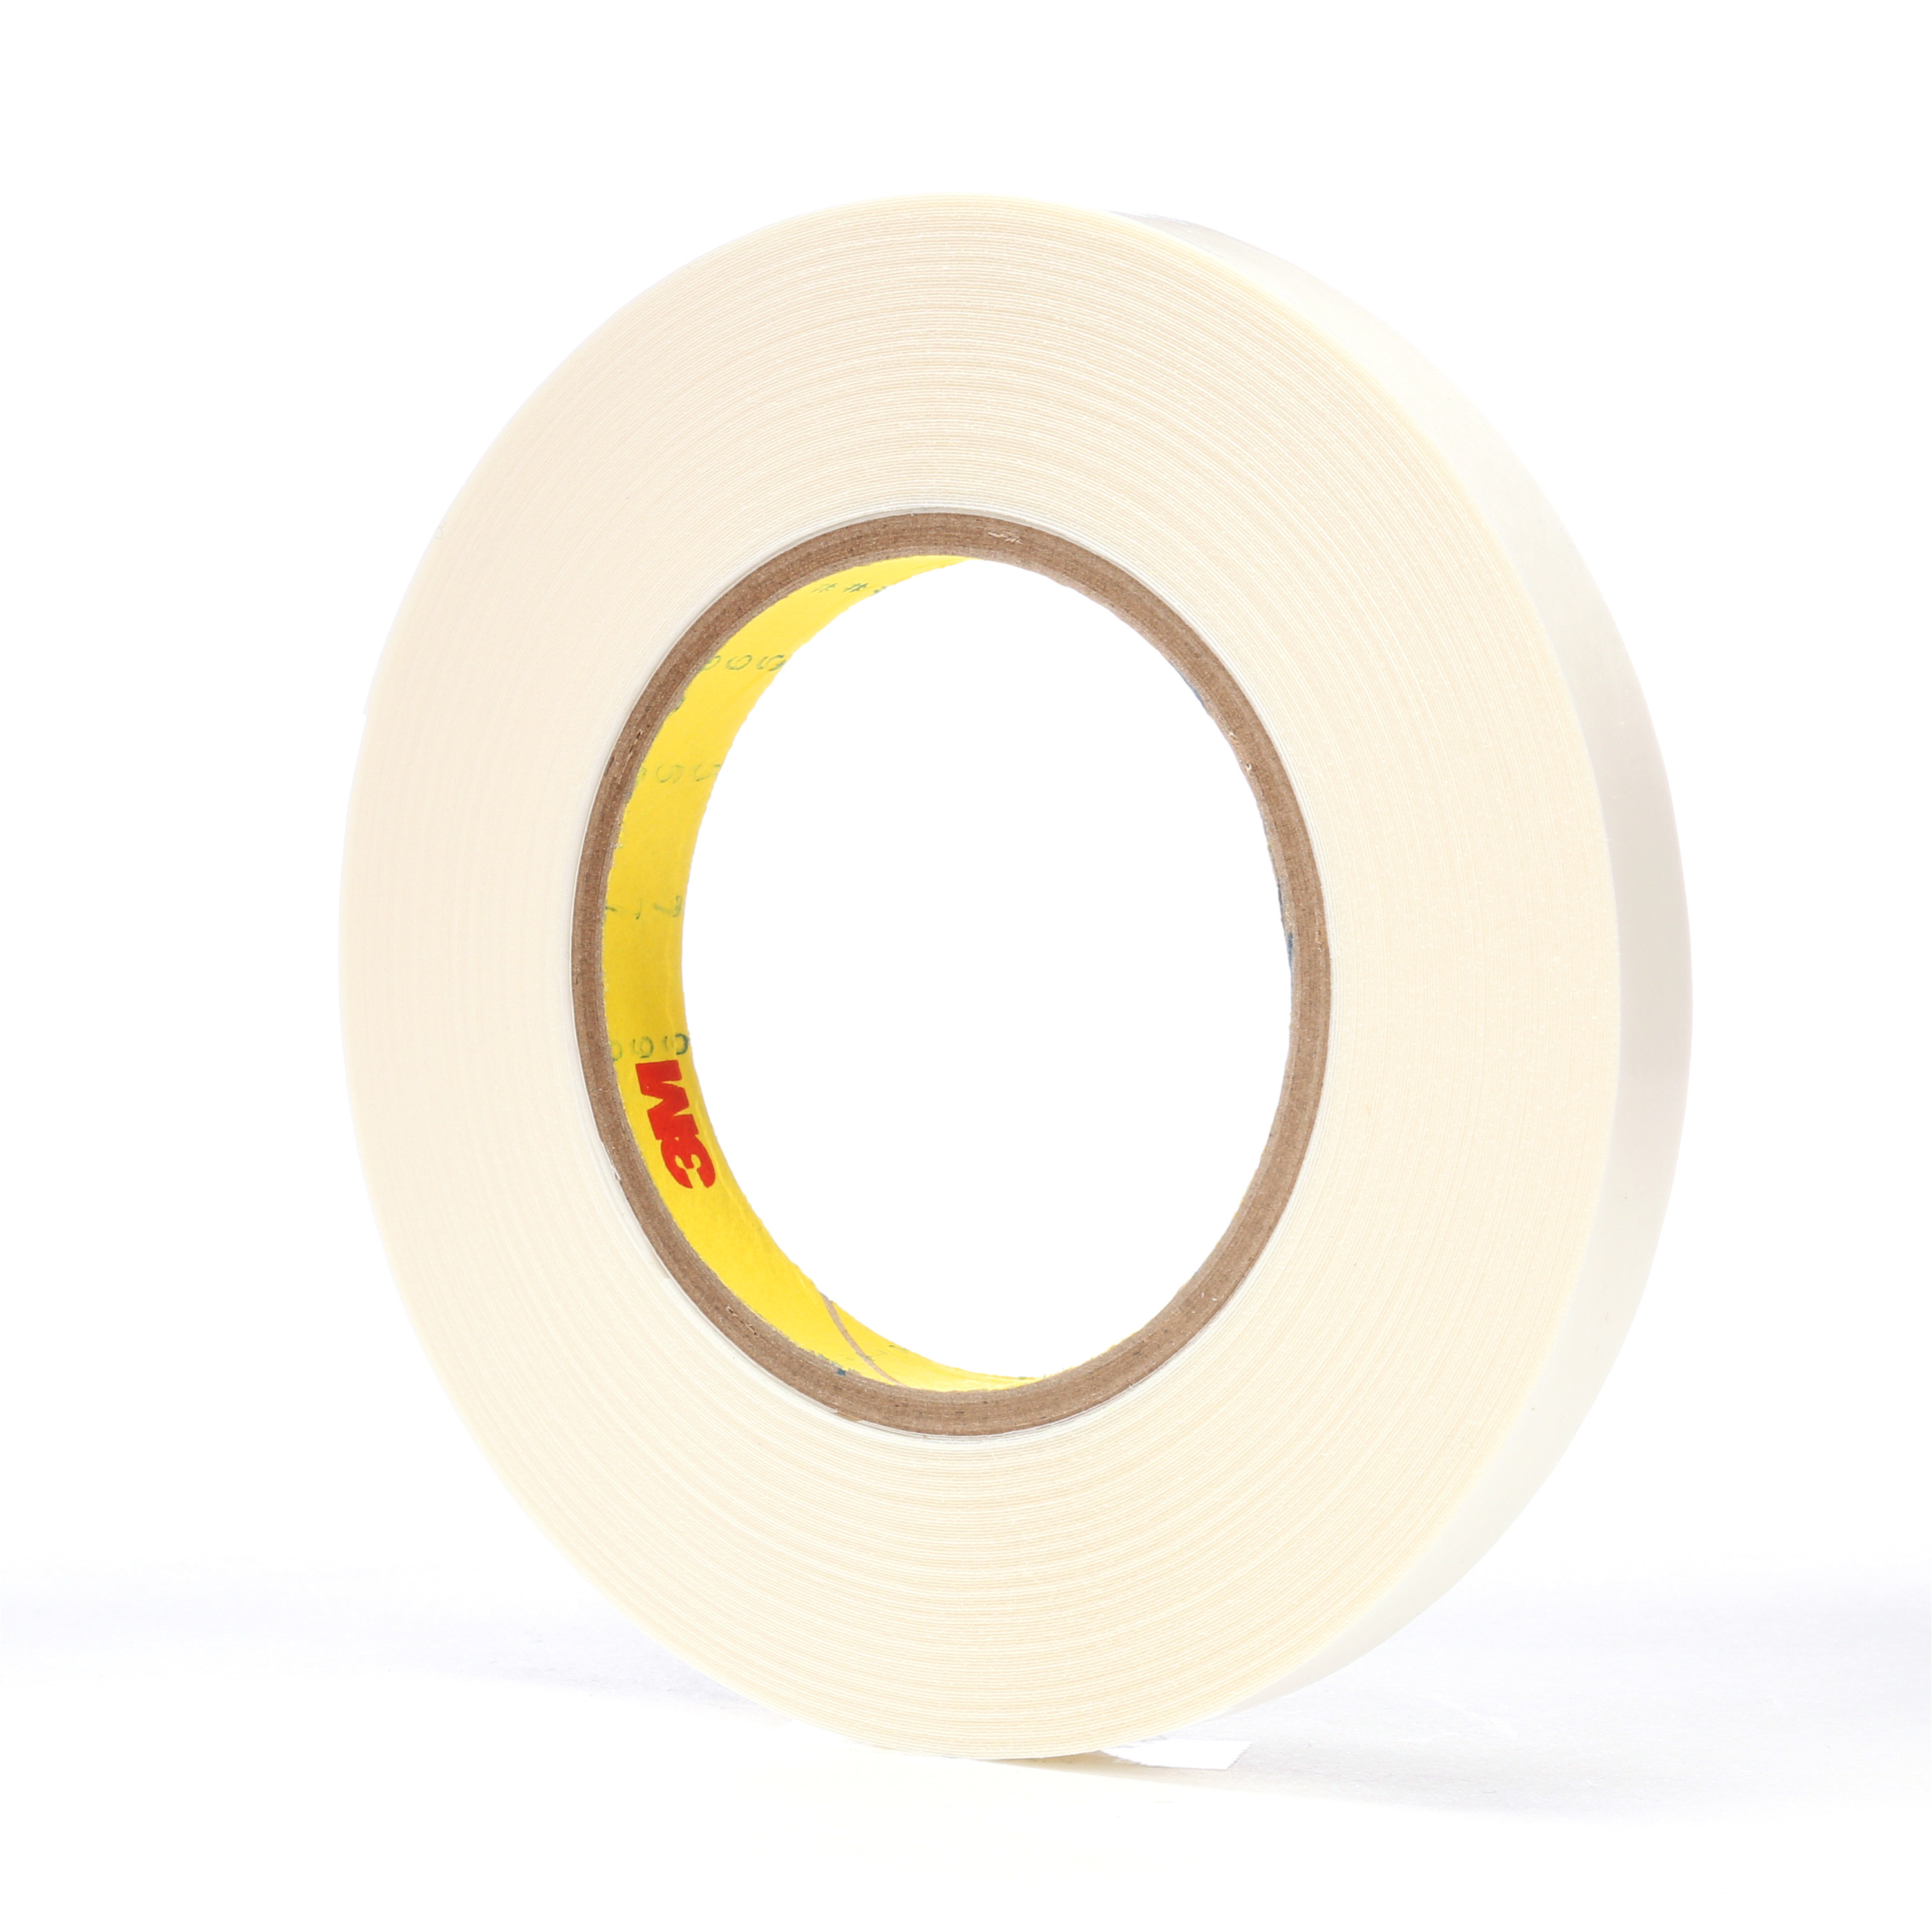 3M™ Double Coated Tape 9579, White, 1/2 in x 36 yd, 9 mil, 72 rolls per case